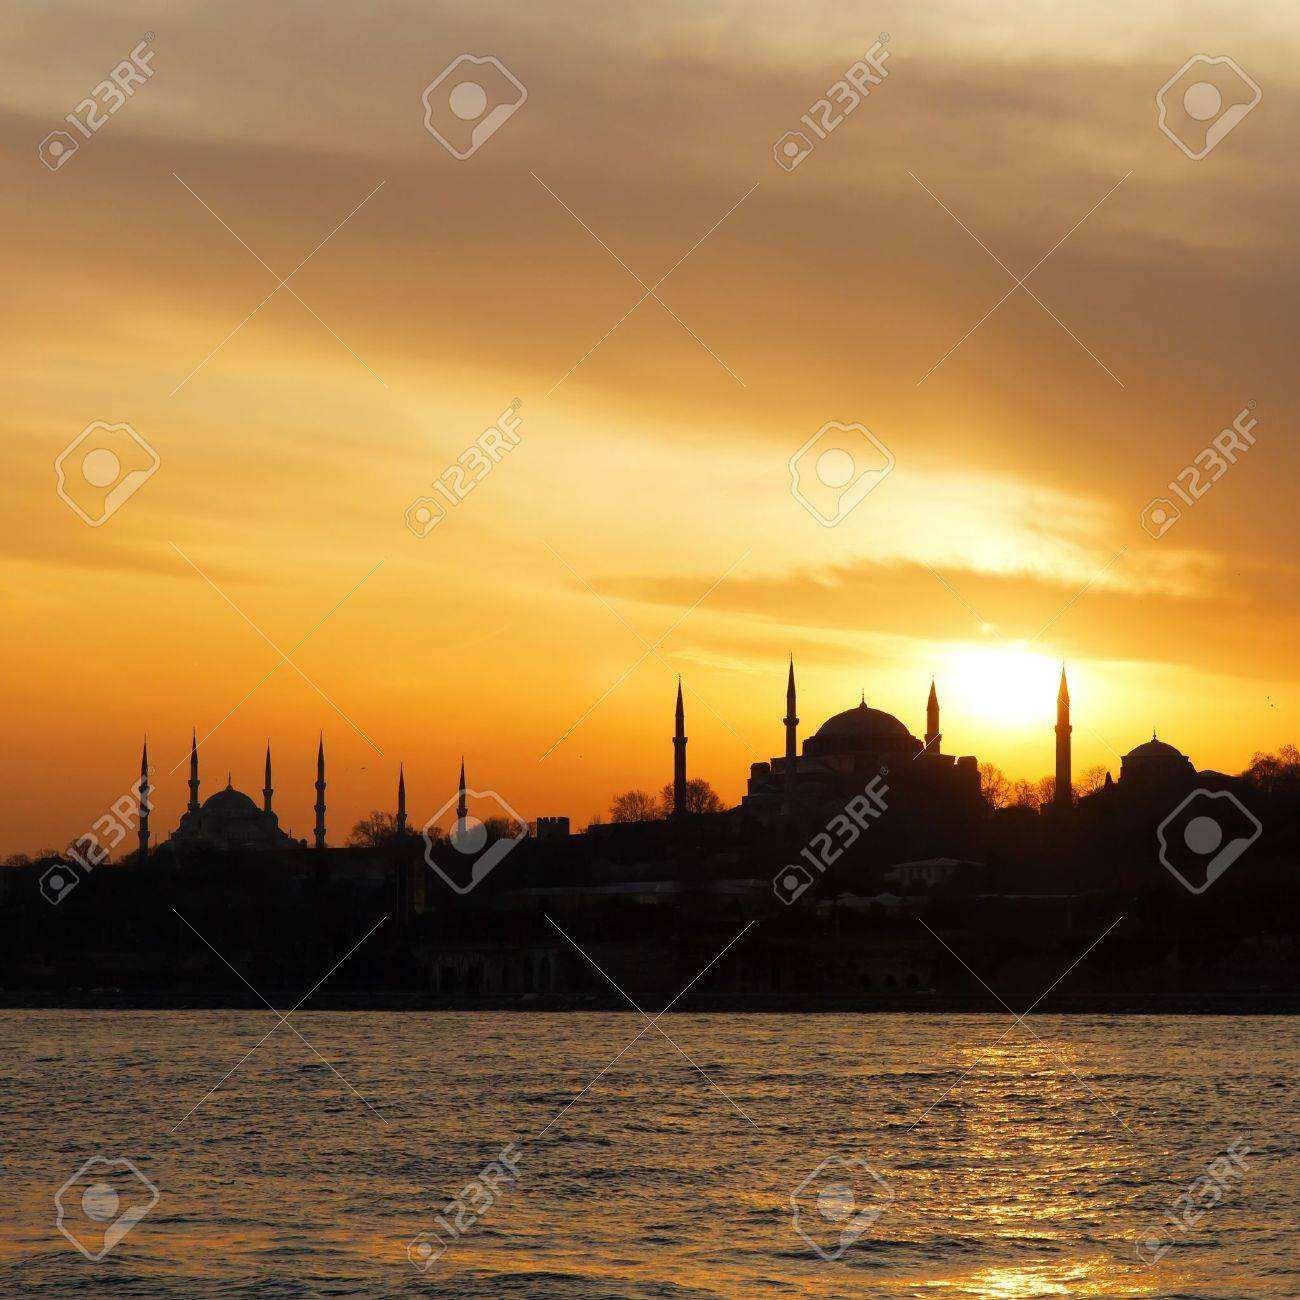 Hagia Sophia and Blue Mosque on sunset in Istanbul - 9256847